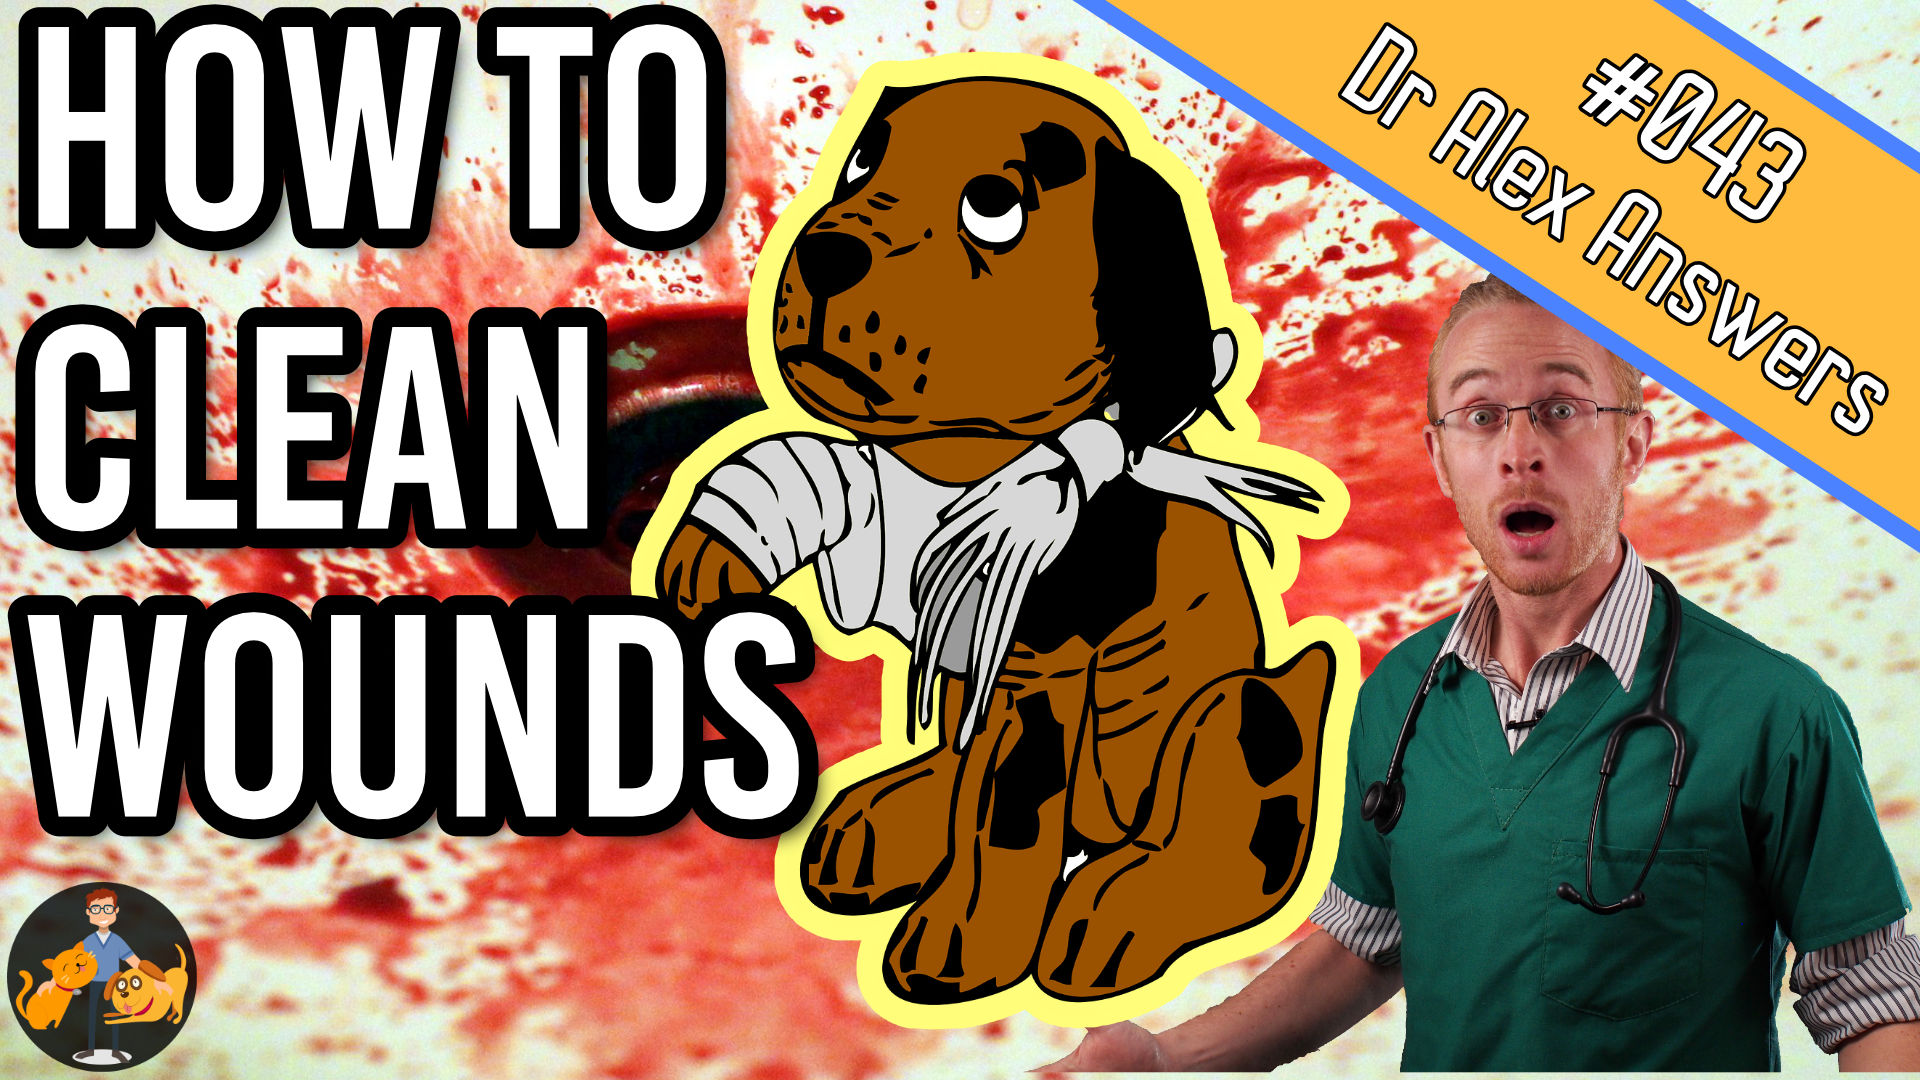 how to clean wounds